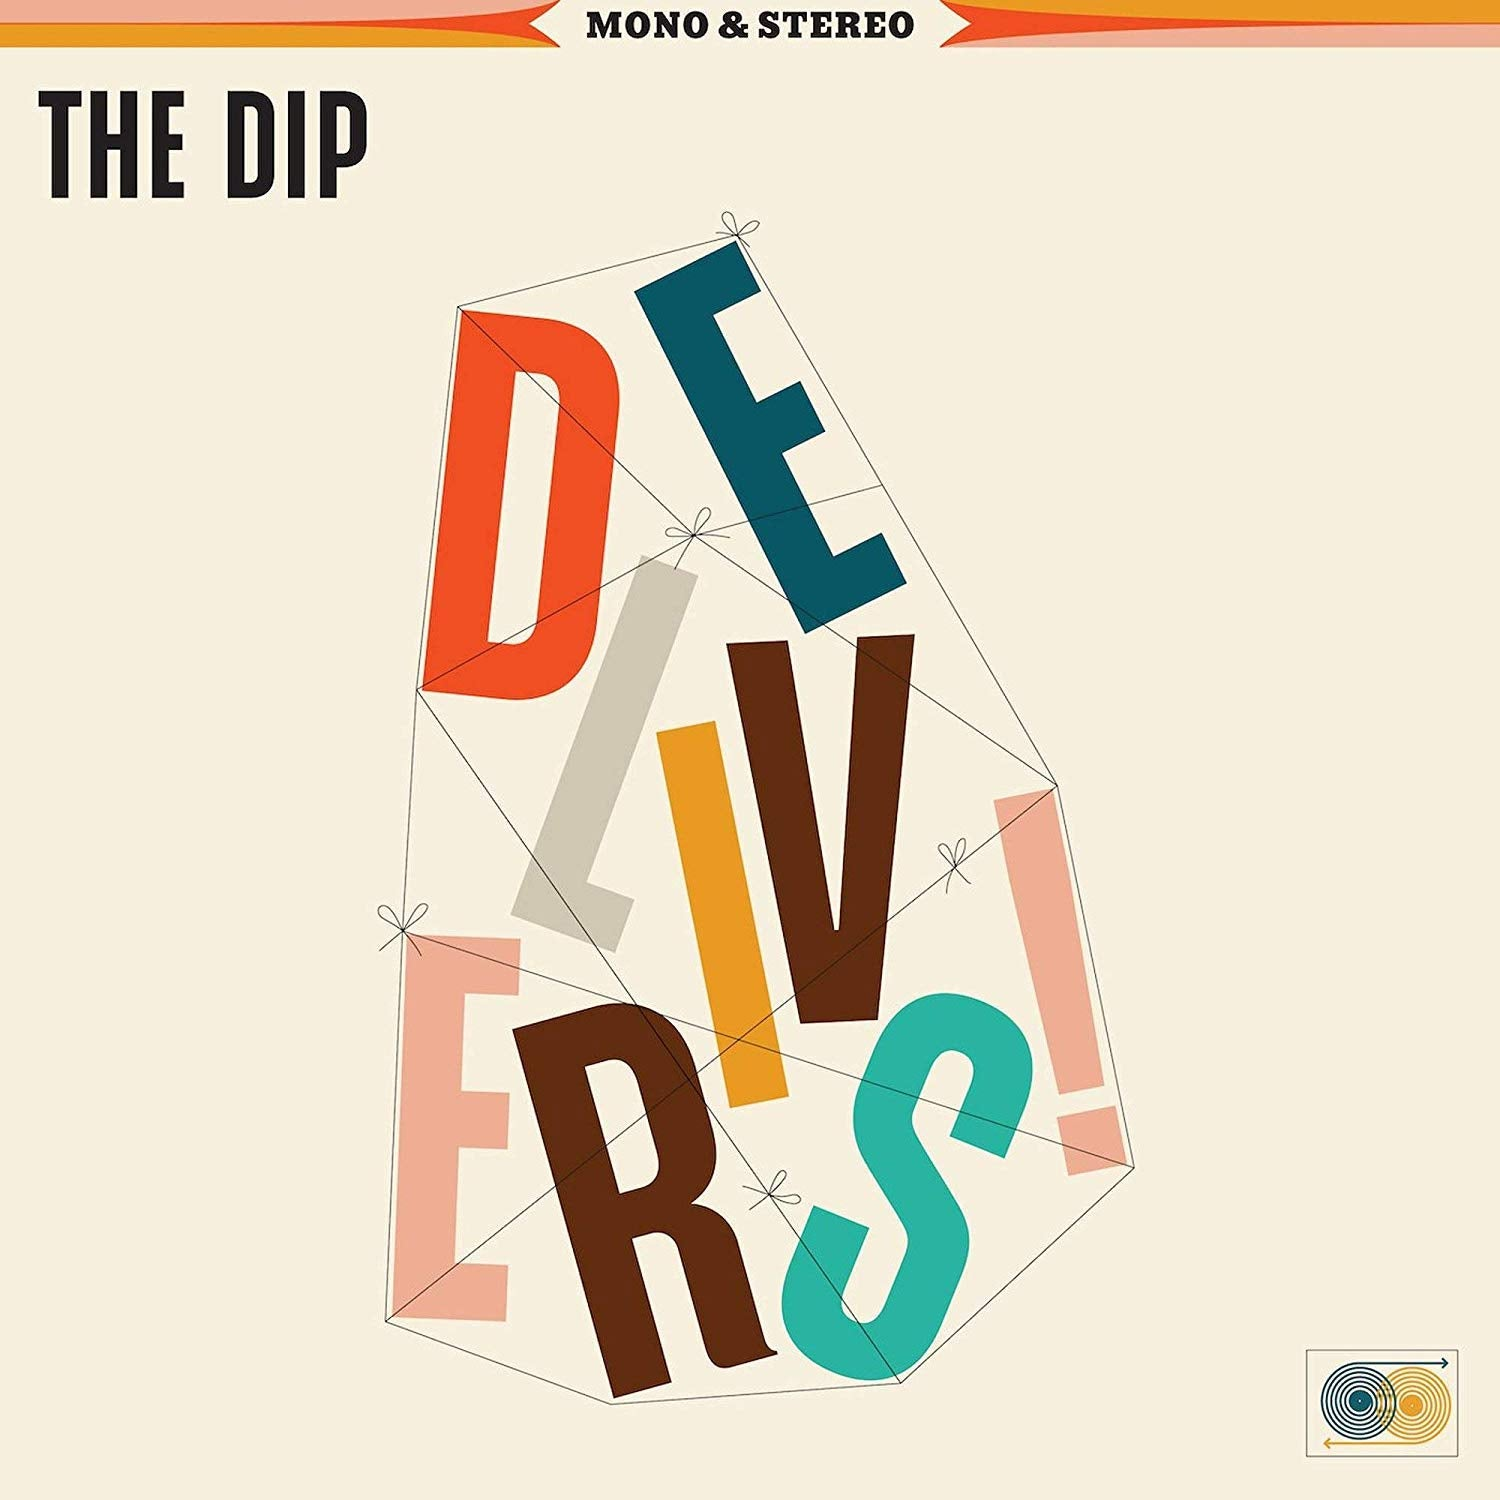 The Dip - The Dip Delivers (LP) (Vinyl) - Urban Vinyl | Records, Headphones, and more.